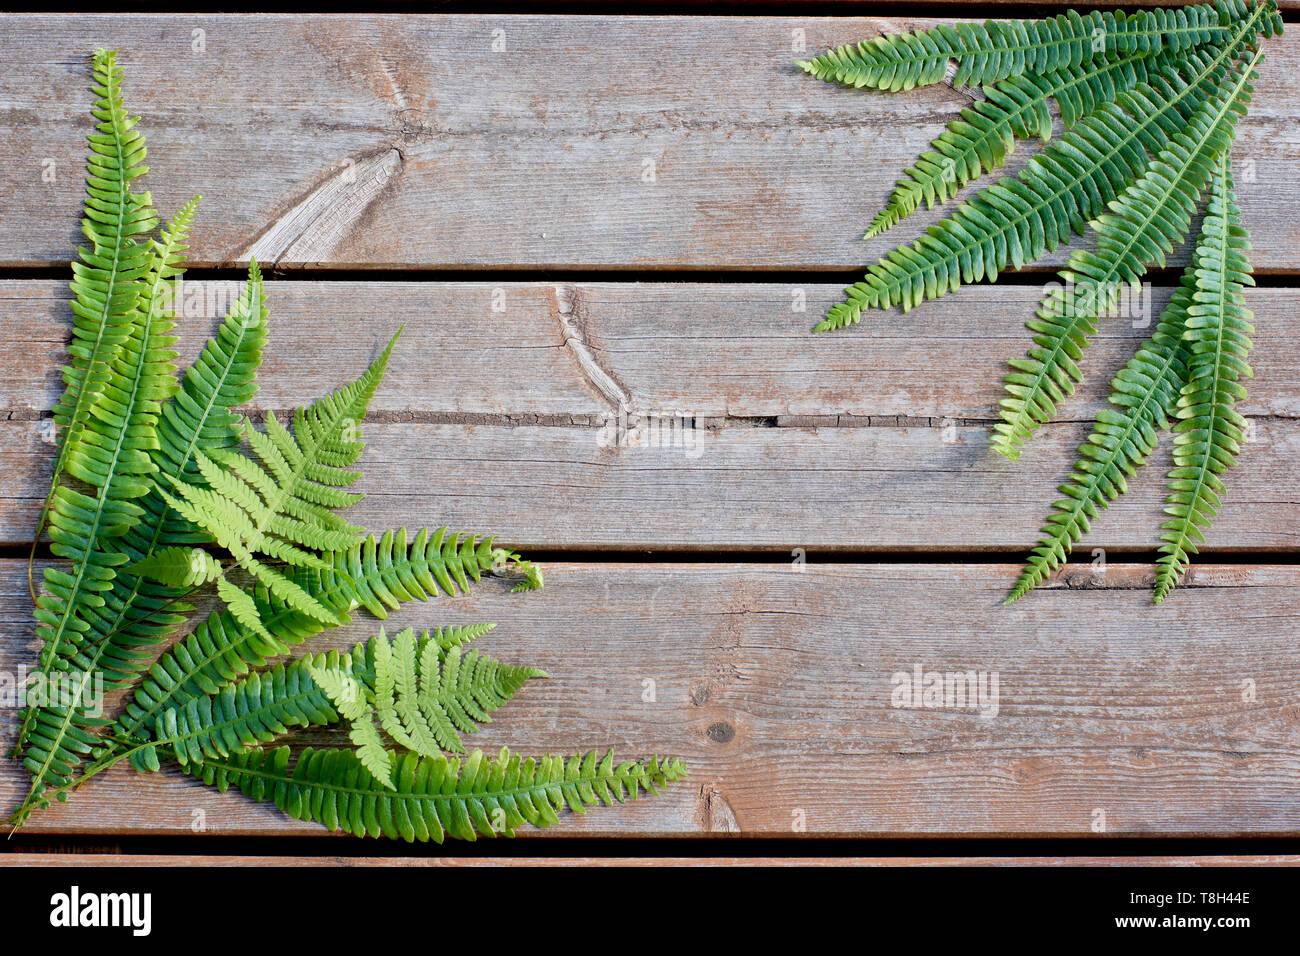 Wooden background with lying green fern branches in the corners diagonally, natural concept - Stock Image